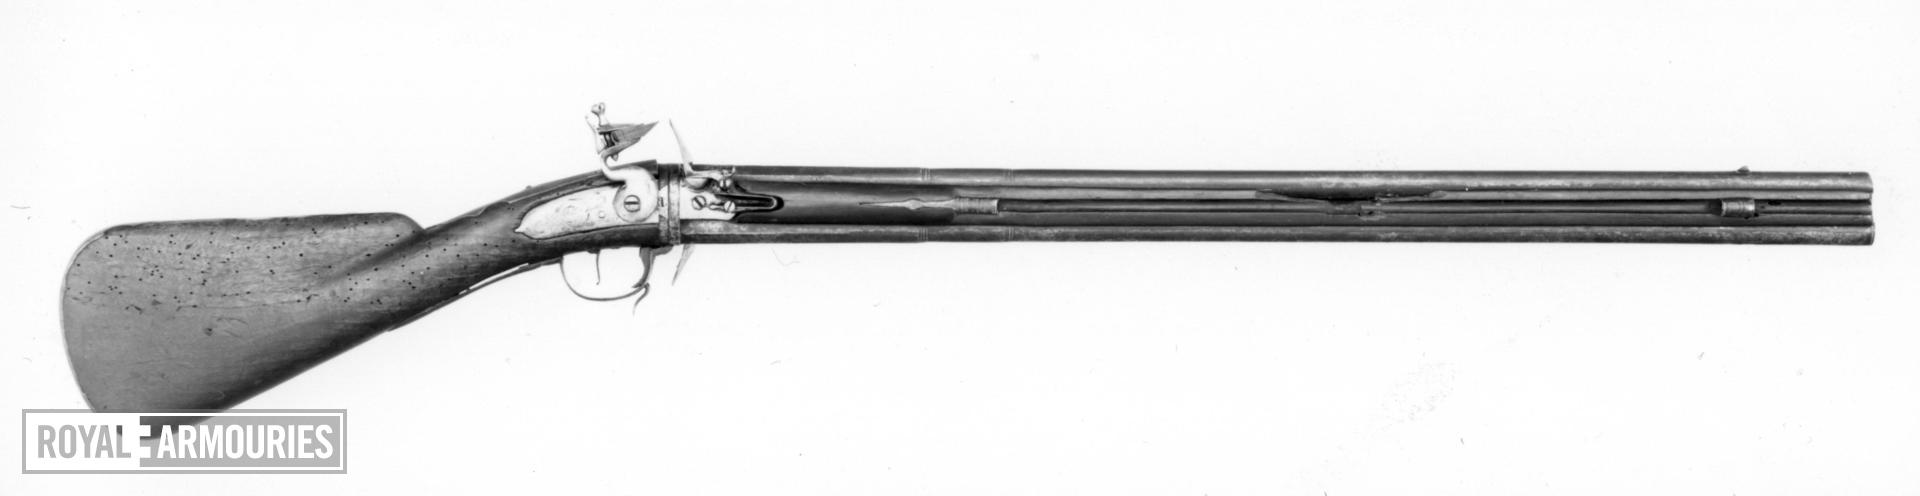 Flintlock sporting gun